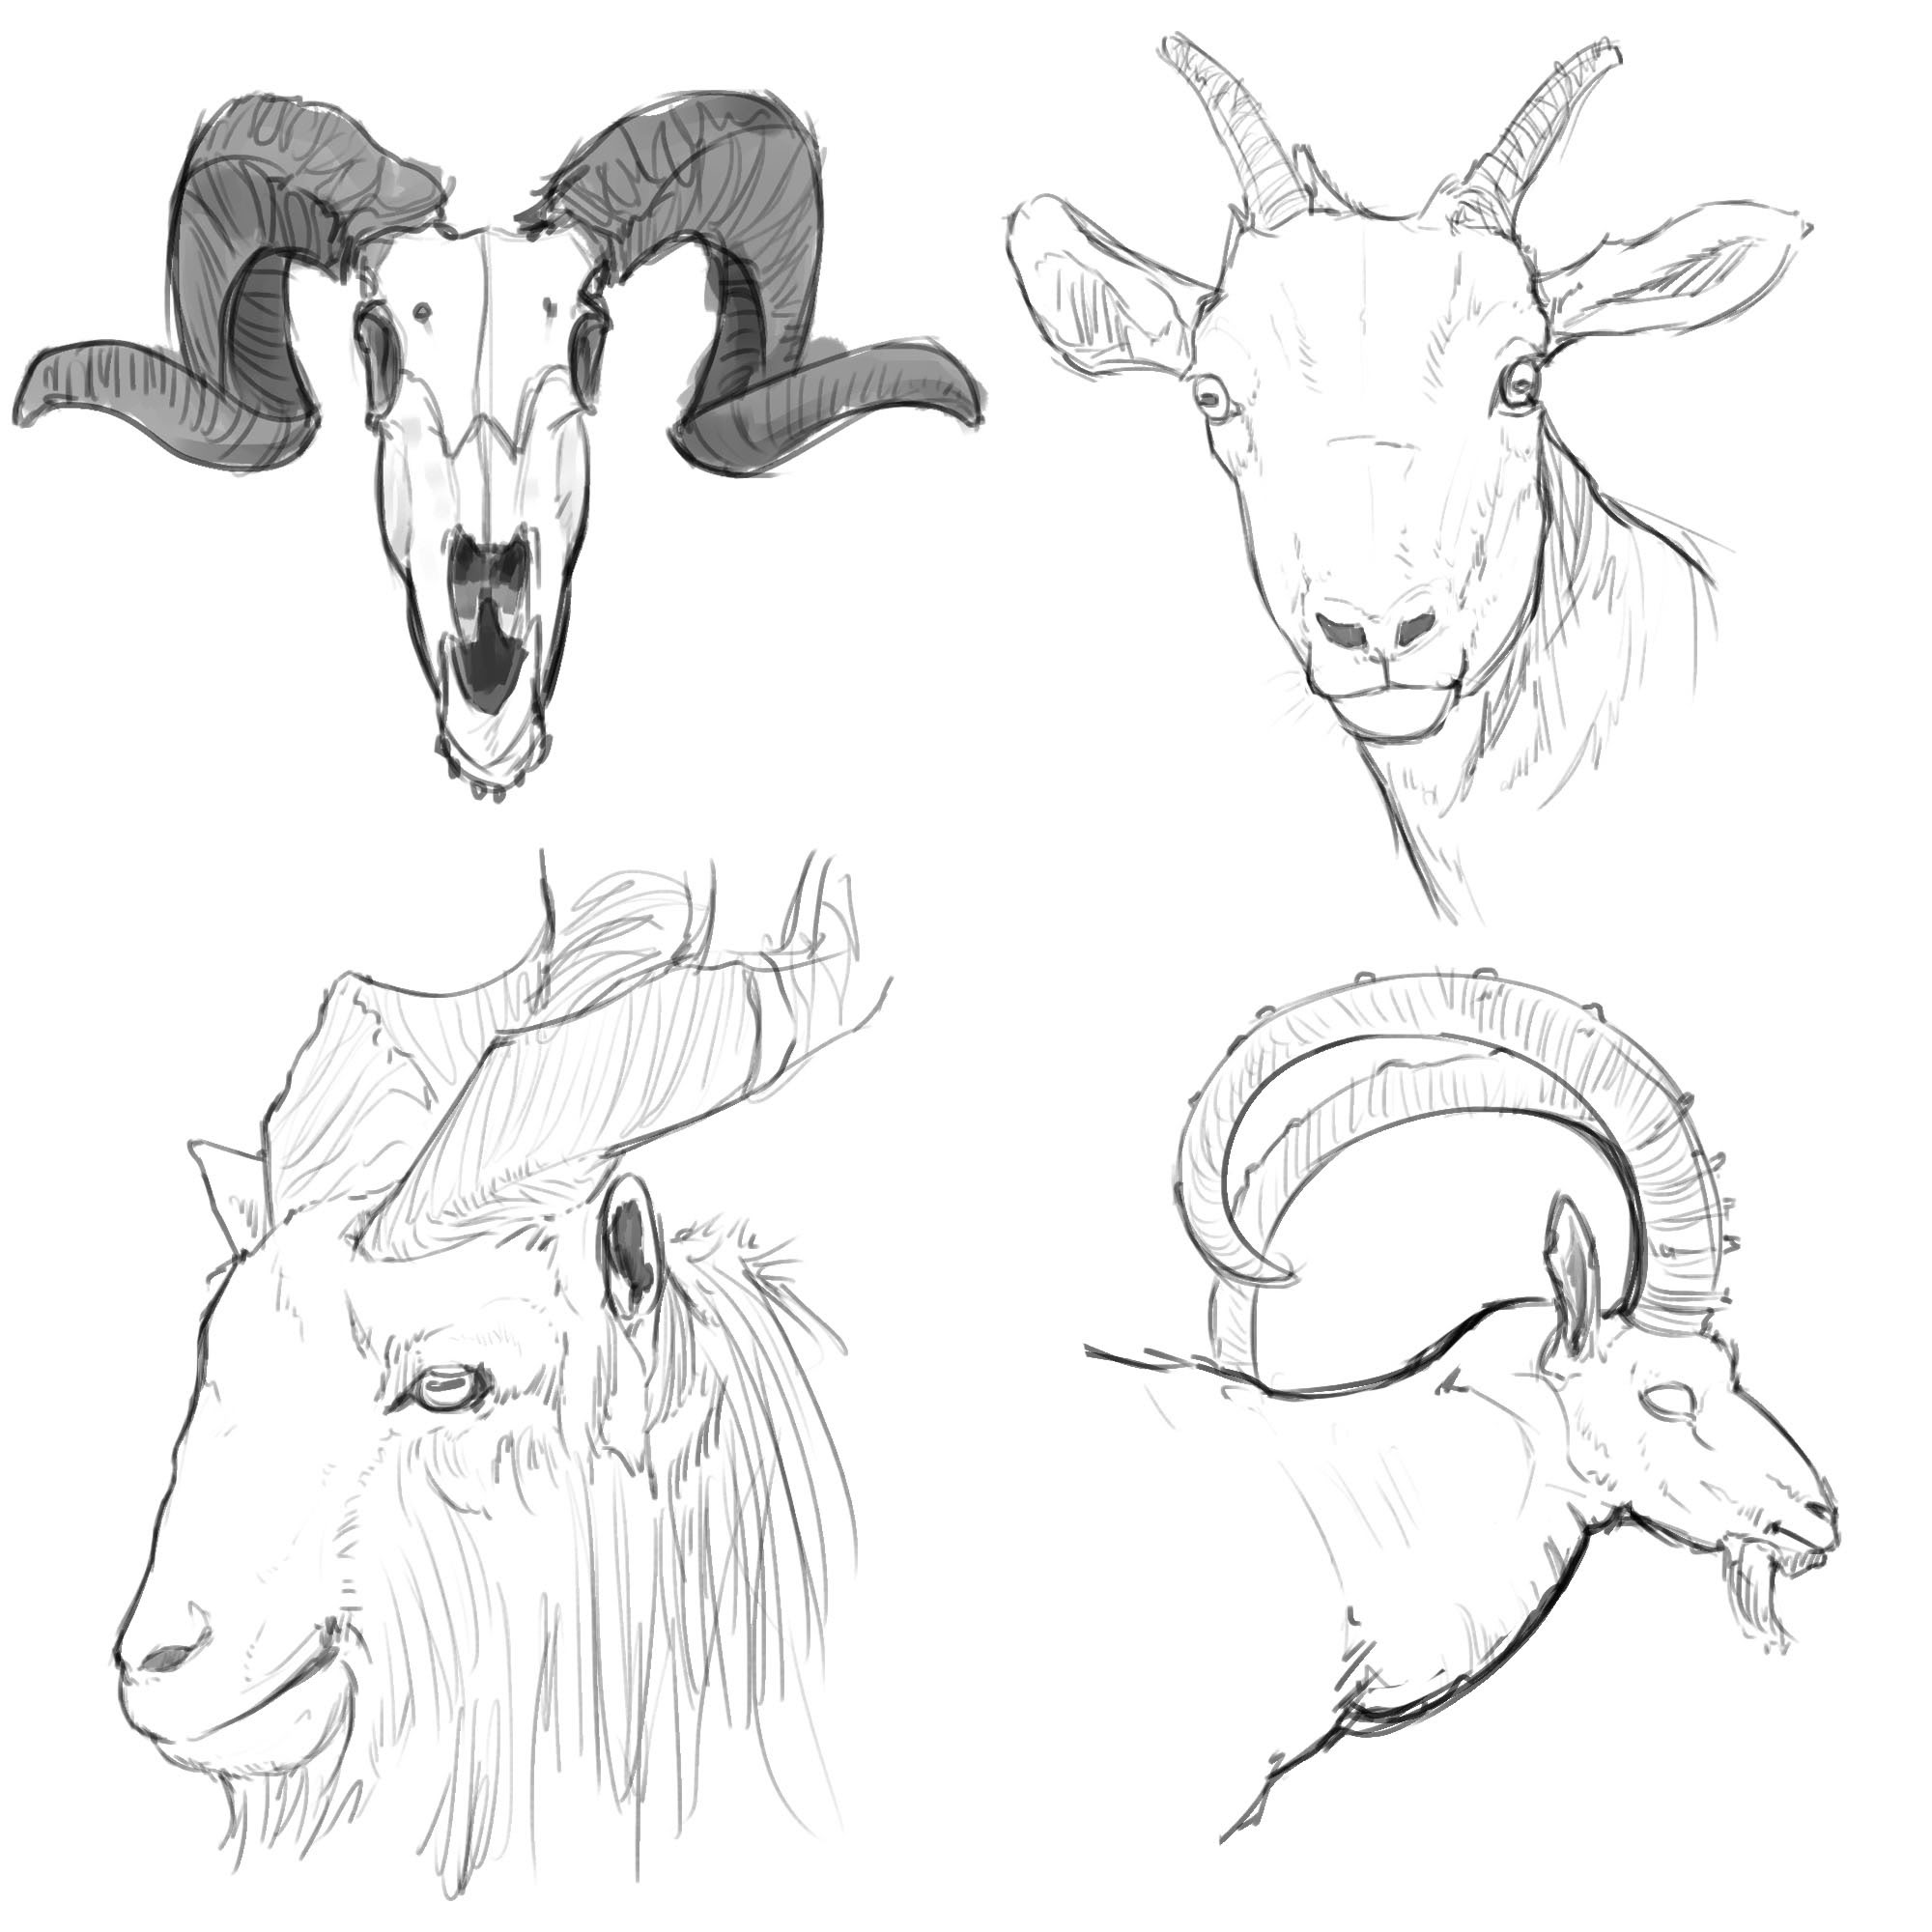 goat sketch how to draw a goat step by step farm animals animals goat sketch